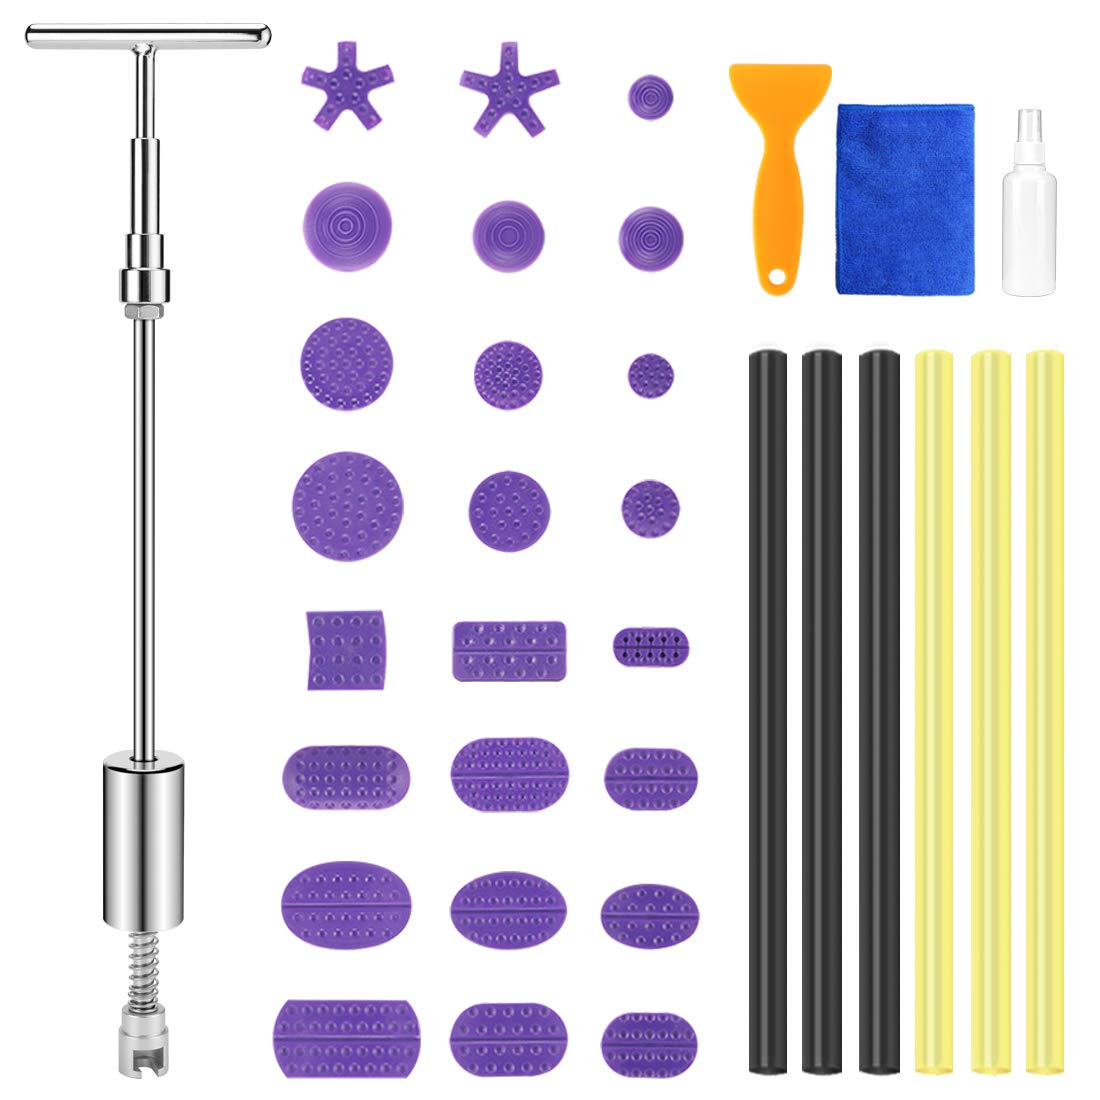 BBKANG 35pcs T Puller paintless dent Repair Remover Removal kit for car dent Door ding Hail Damage relieble Tool